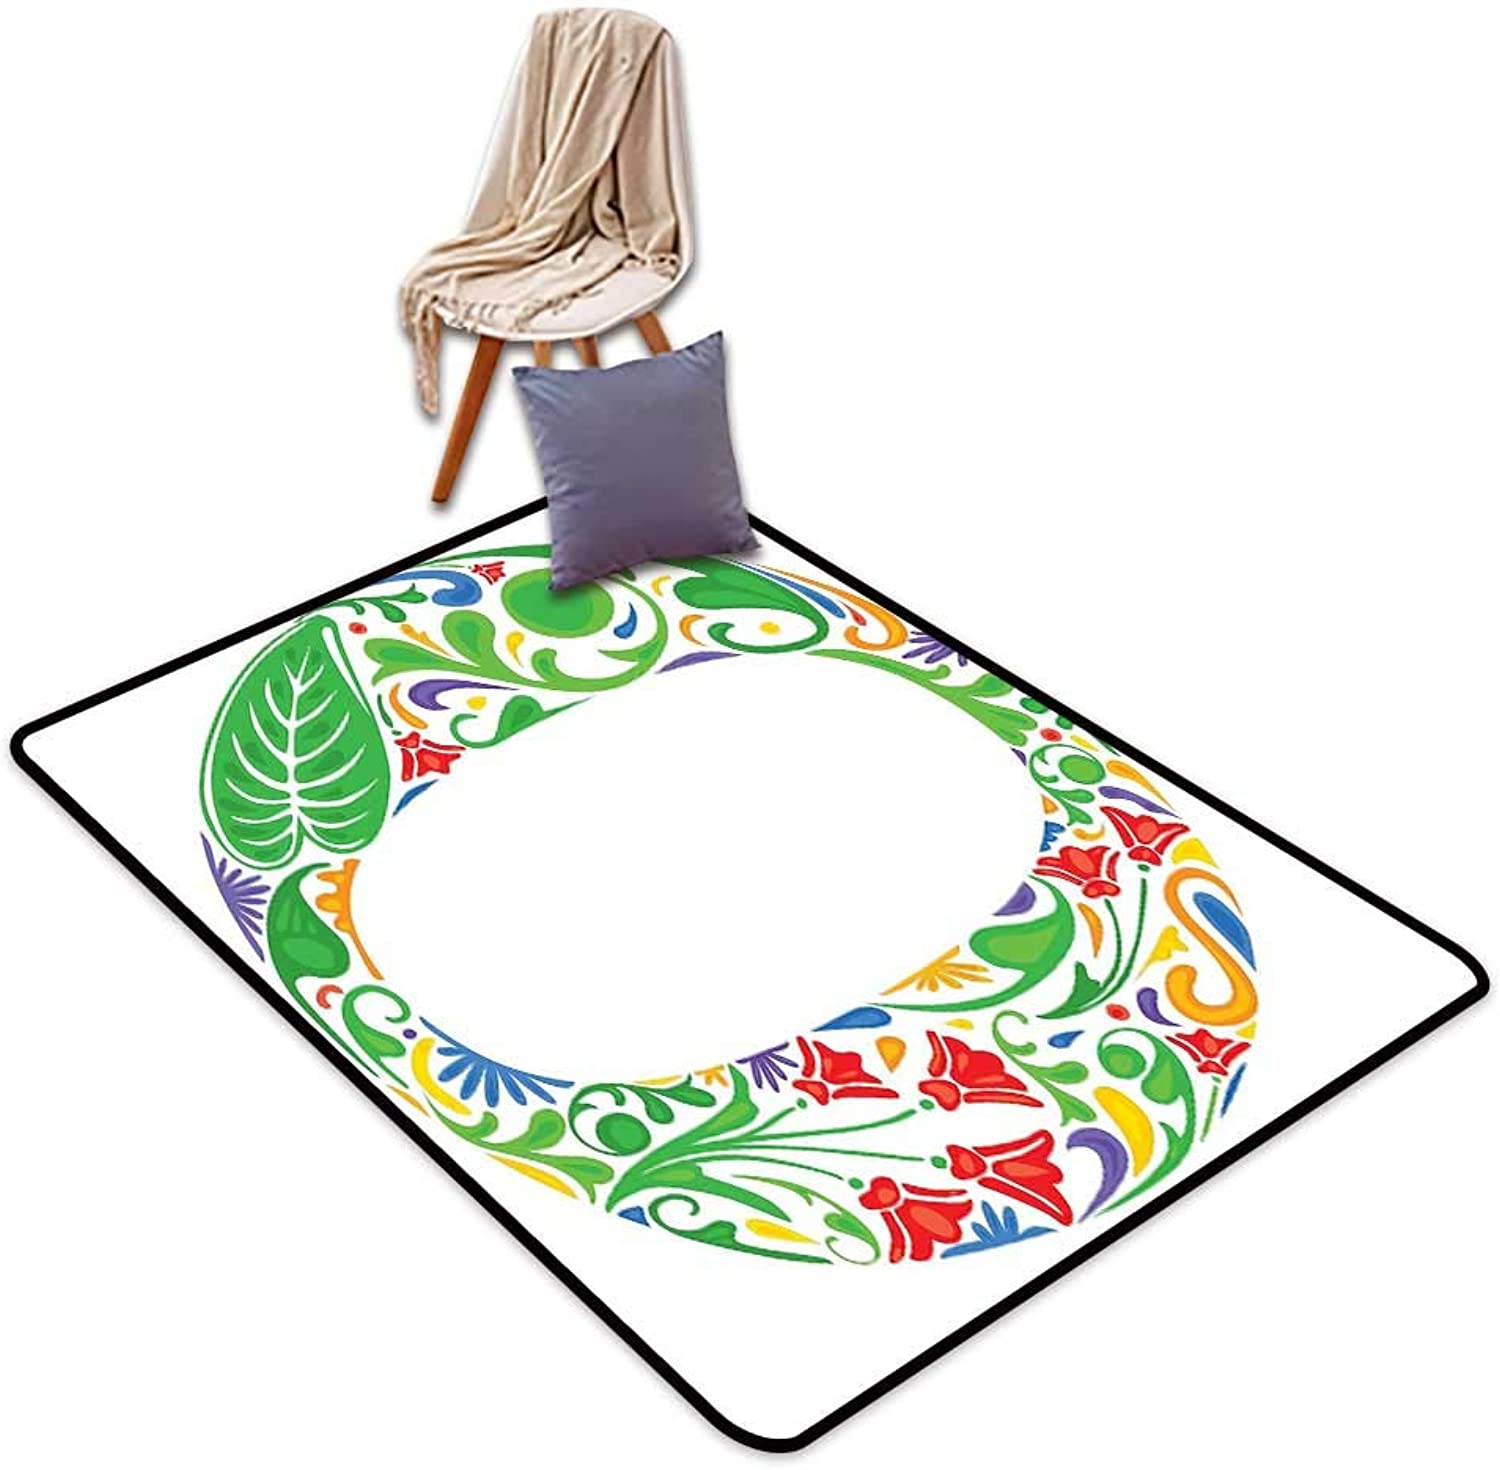 Indoor Super Absorbs Mud Doormat Letter O Floral Font O Circle with colorful Jungle Flowers and Big Leaves Vintage Natural W6'xL7' Suitable for Family